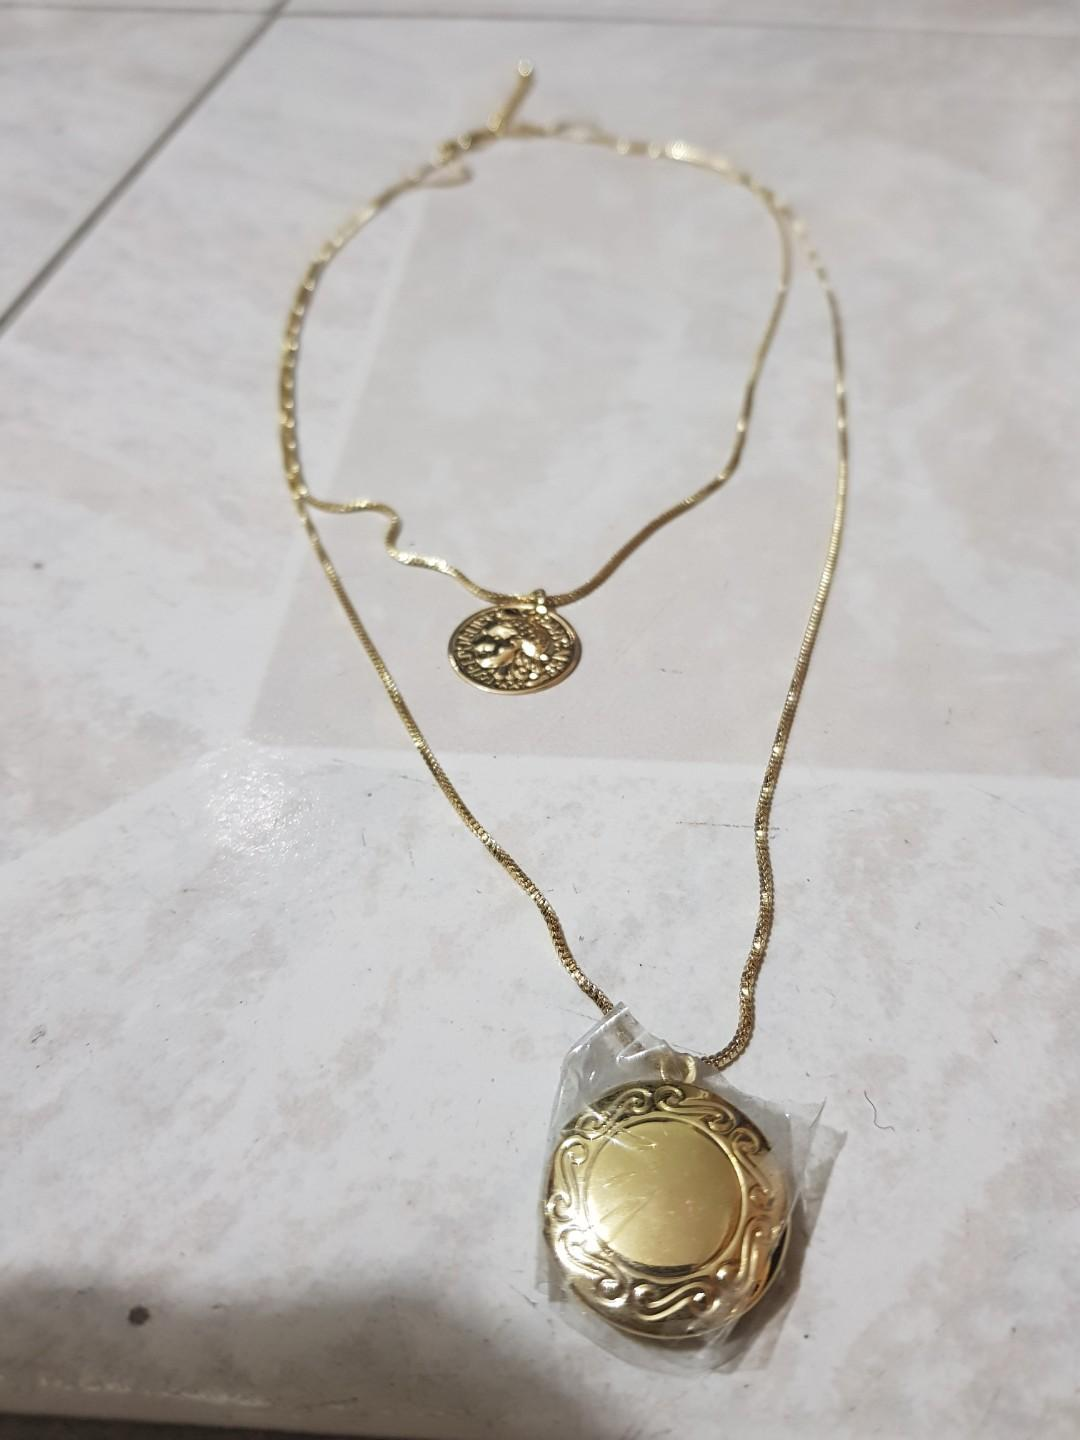 BRAND NEW - Costume gold necklace with locket and coin pendants